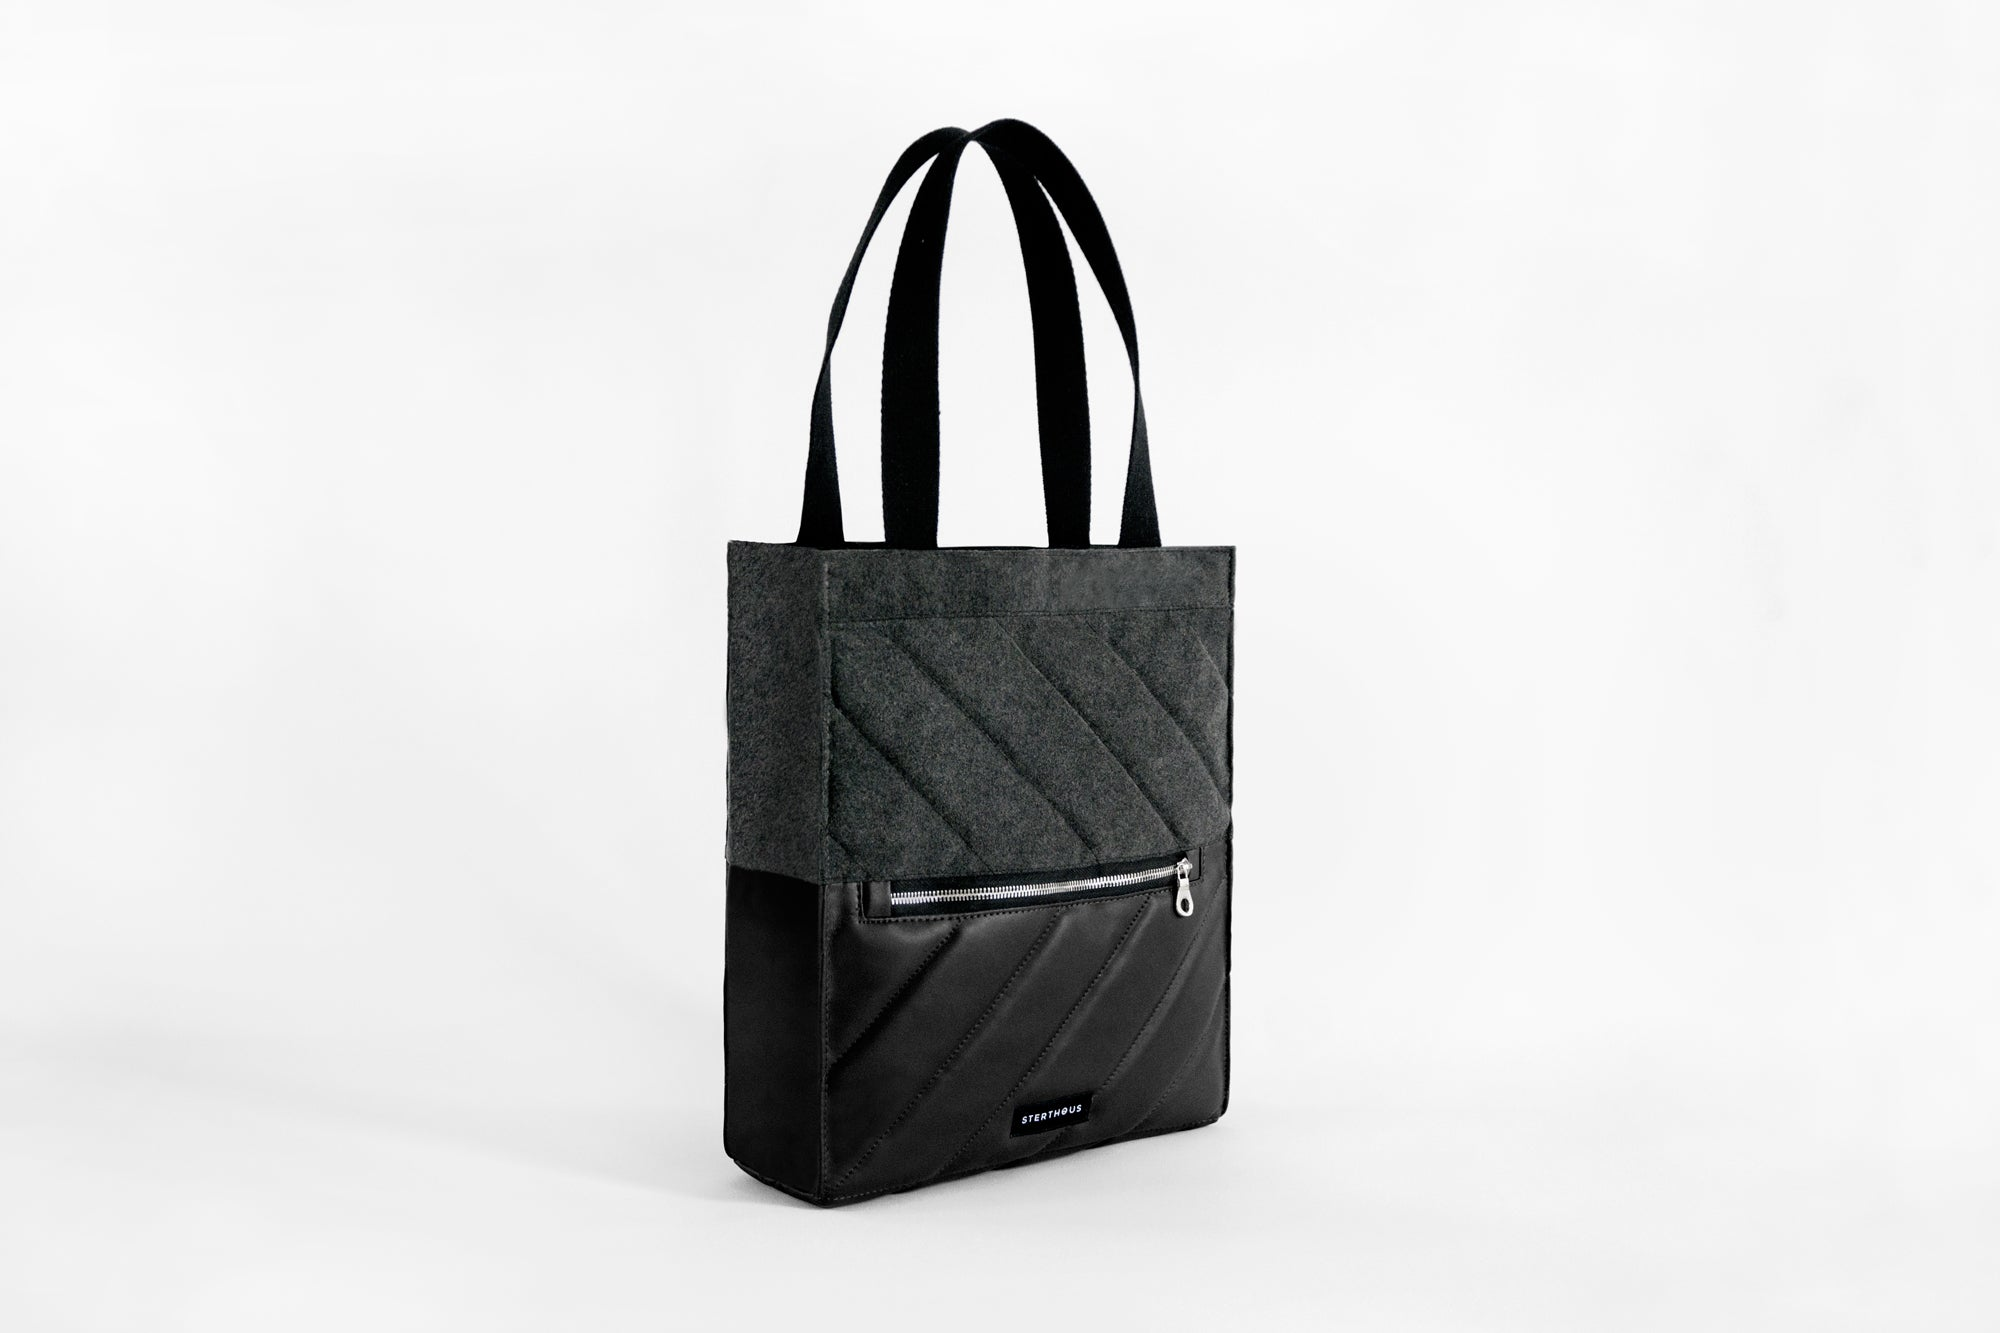 STERTHOUS - hand-quilted vegan leather tote bag with laptop pocket | sustainable product design | made in USA